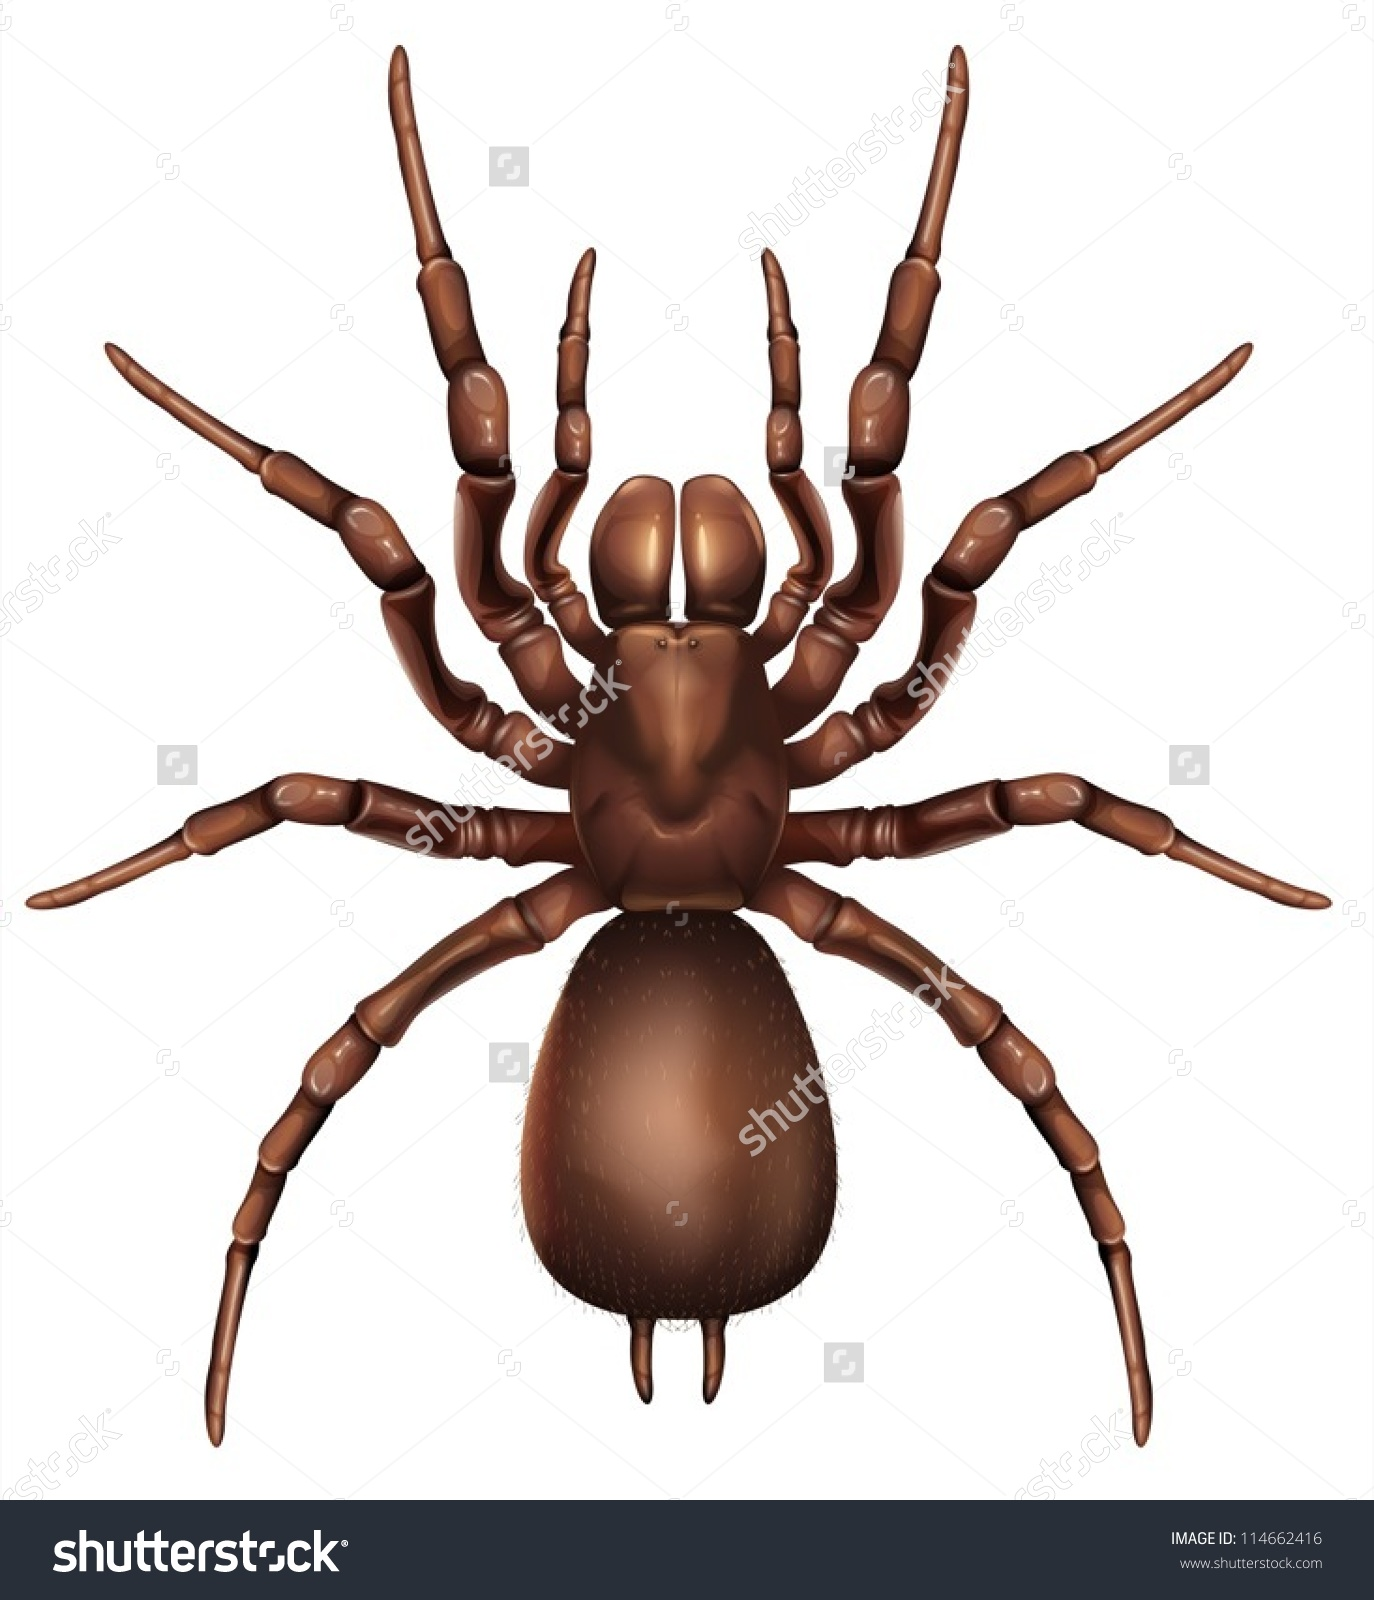 Illustration Sydney Funnelweb Spider Atrax Robustus Stock Vector.